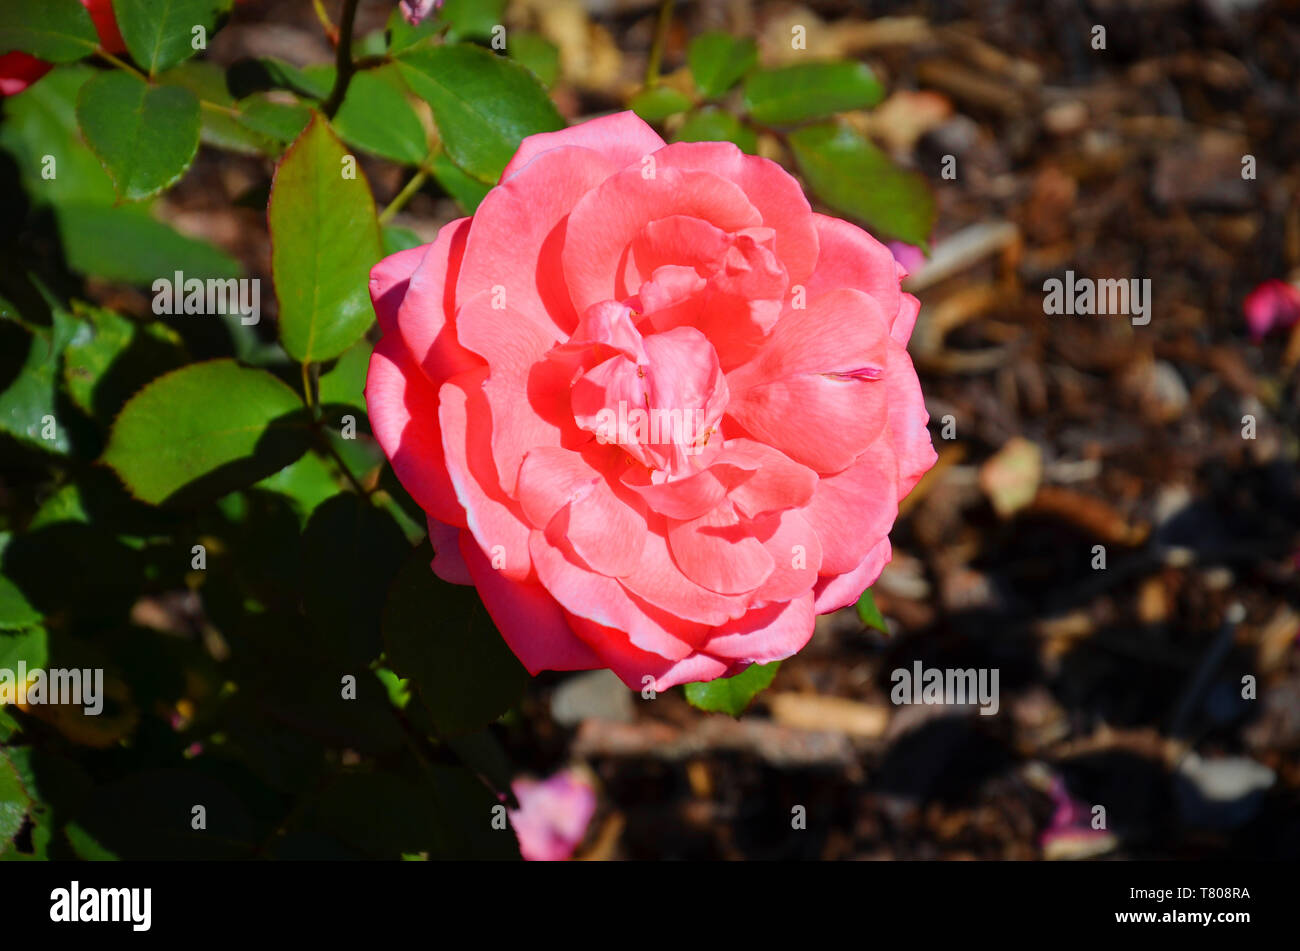 Amazing close up photography of pink Hybrid tea rose, Rosaceae, taken from above during spring season. The background of the photography is blurred, brown and green. - Stock Image